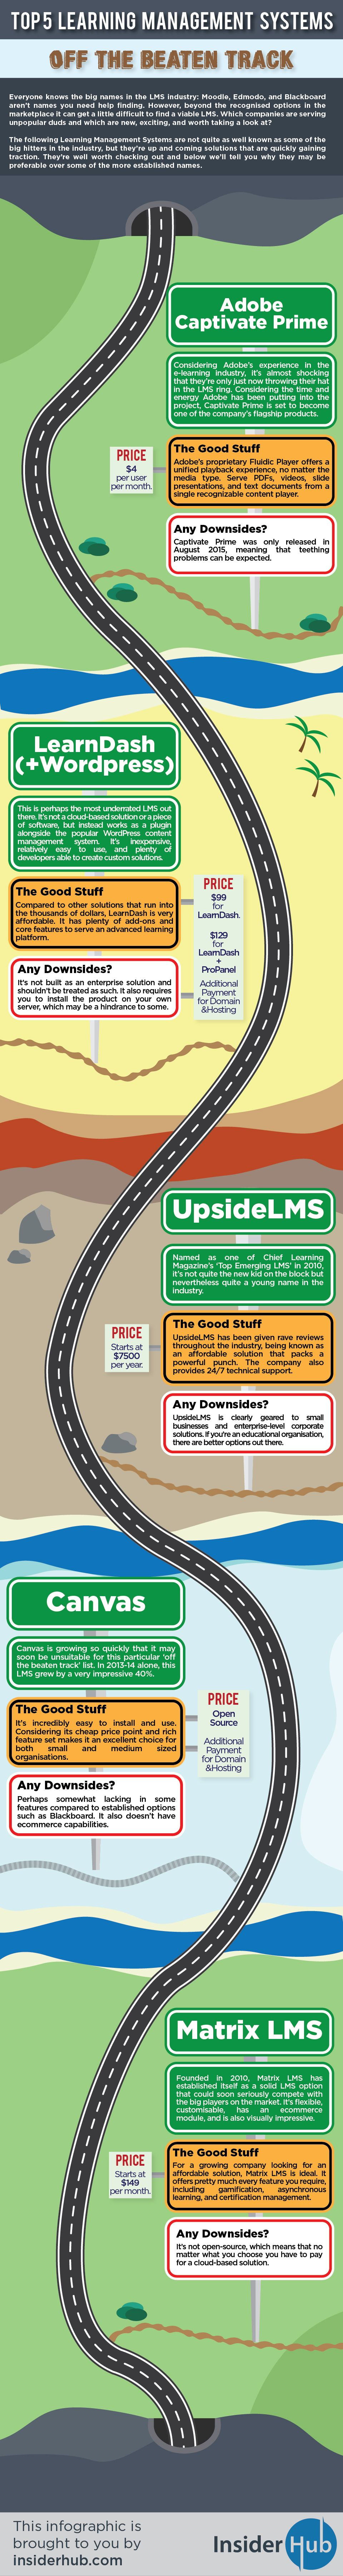 Top 5 LMS Off the Beaten Track